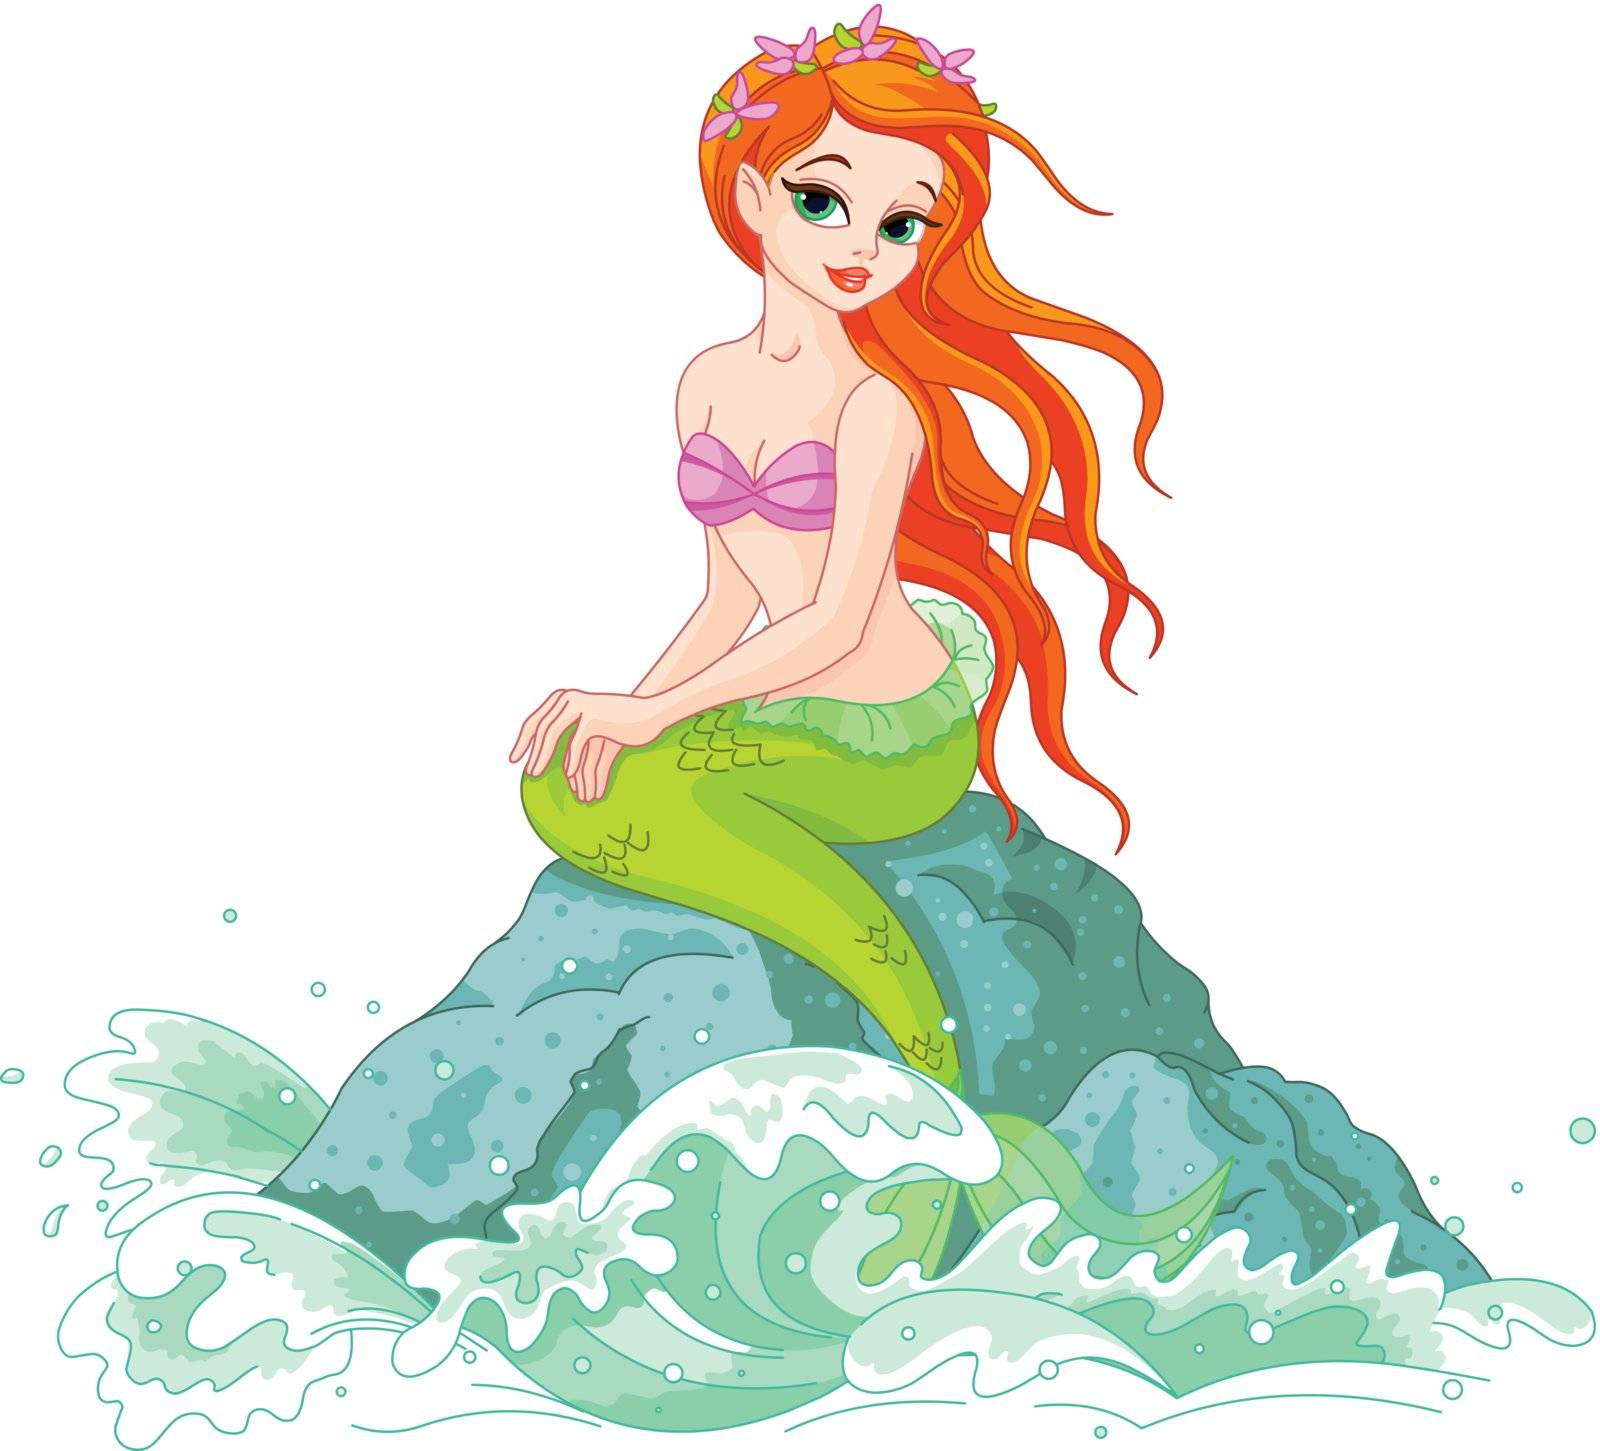 Illustration of a Beautiful mermaid girl sitting on the rock